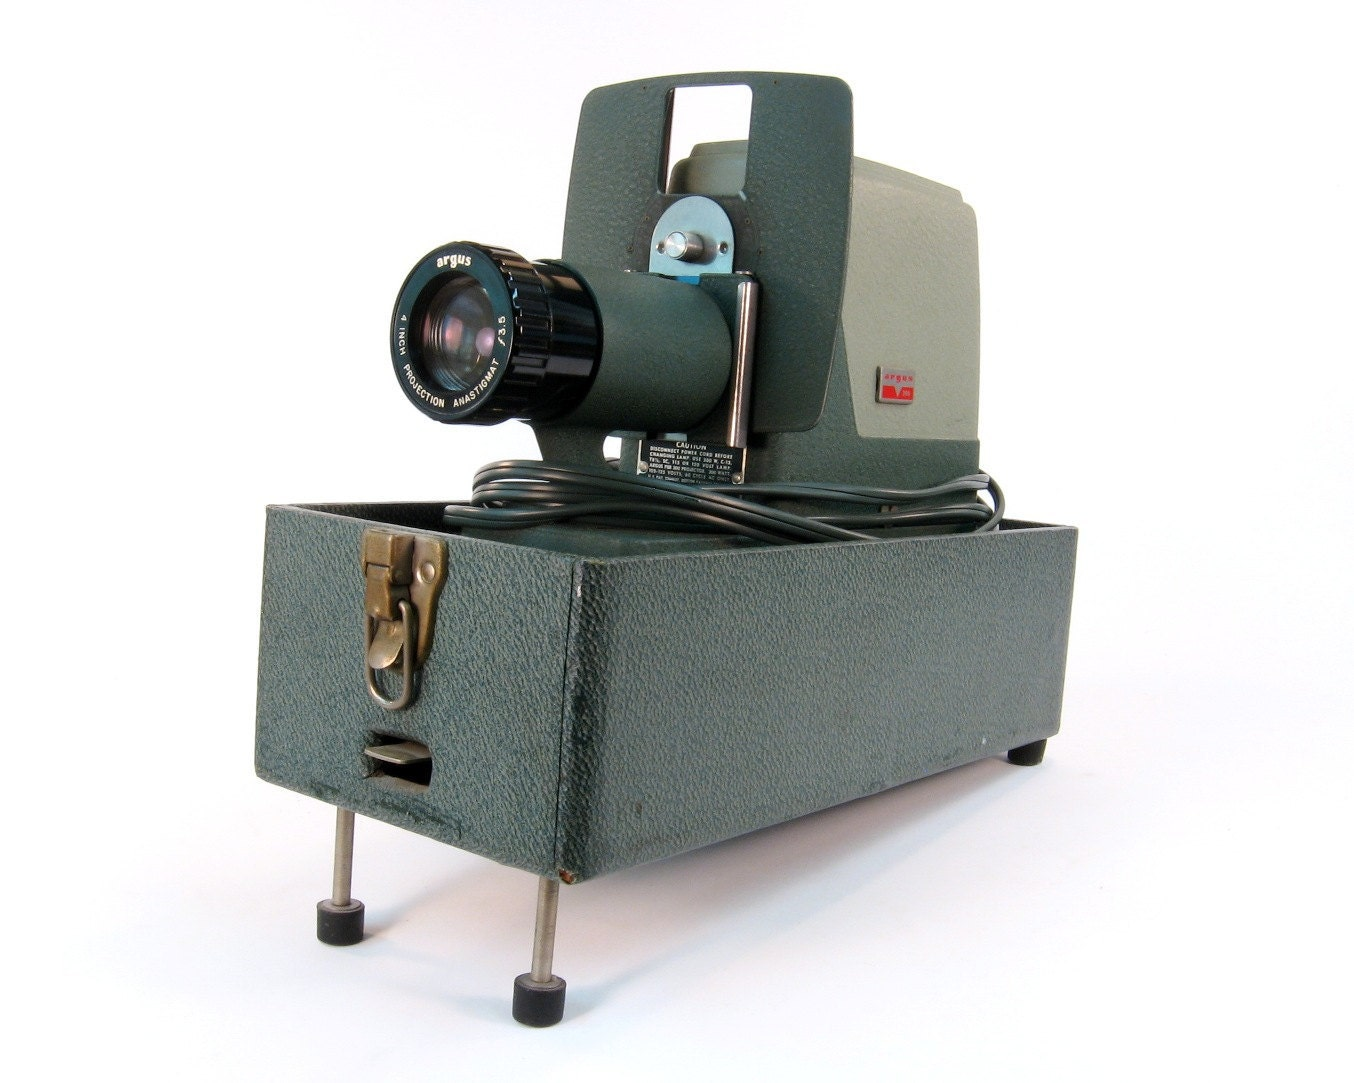 Starburst lamp etsy - Vintage Slide Projector Argus 300 1950s Vintage Green With